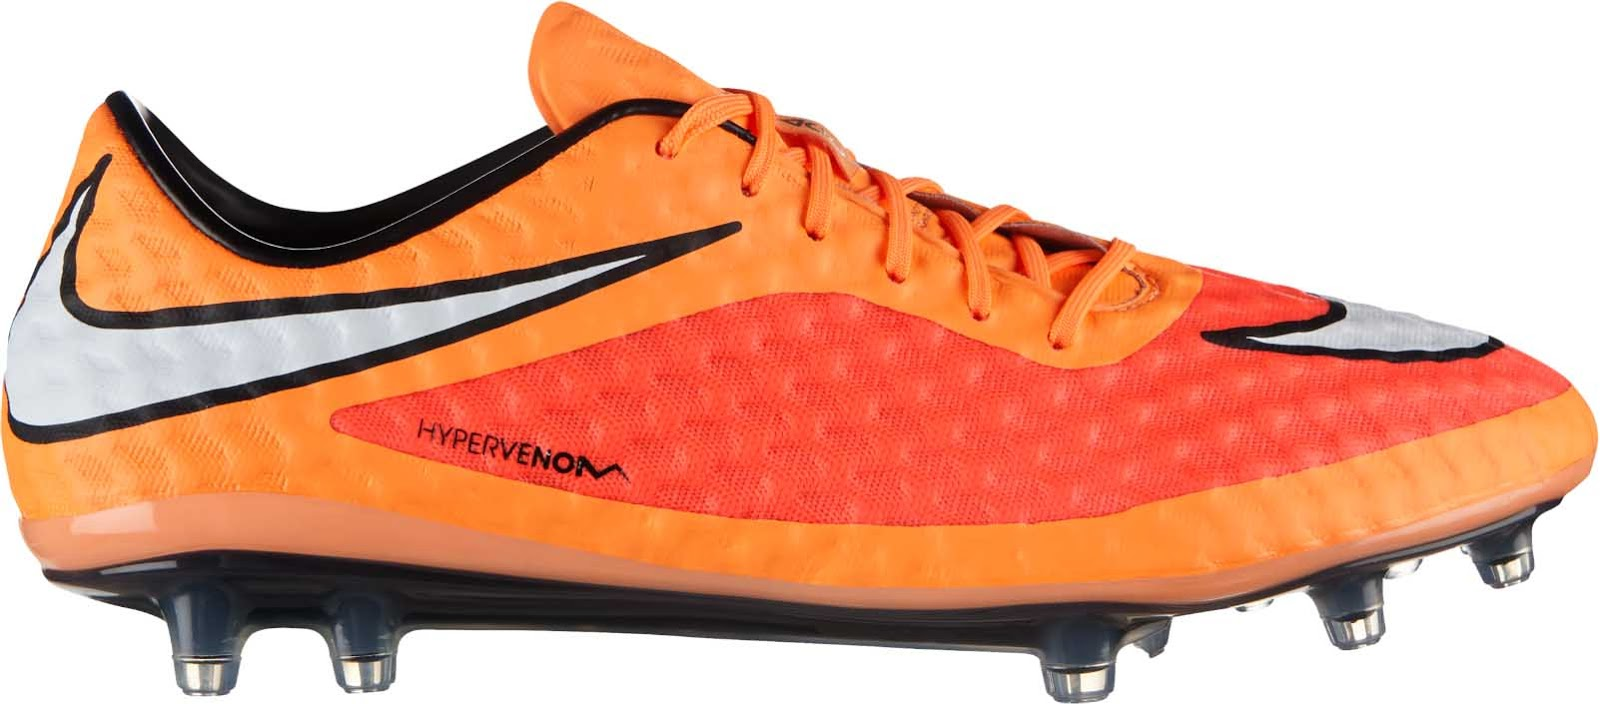 52ab08418a55 The new Nike Hypervenom 2014-2015 Boot Colorway is mainly Hyper Crimson    Atomic Orange combined with a white Nike Swoosh and black applications.